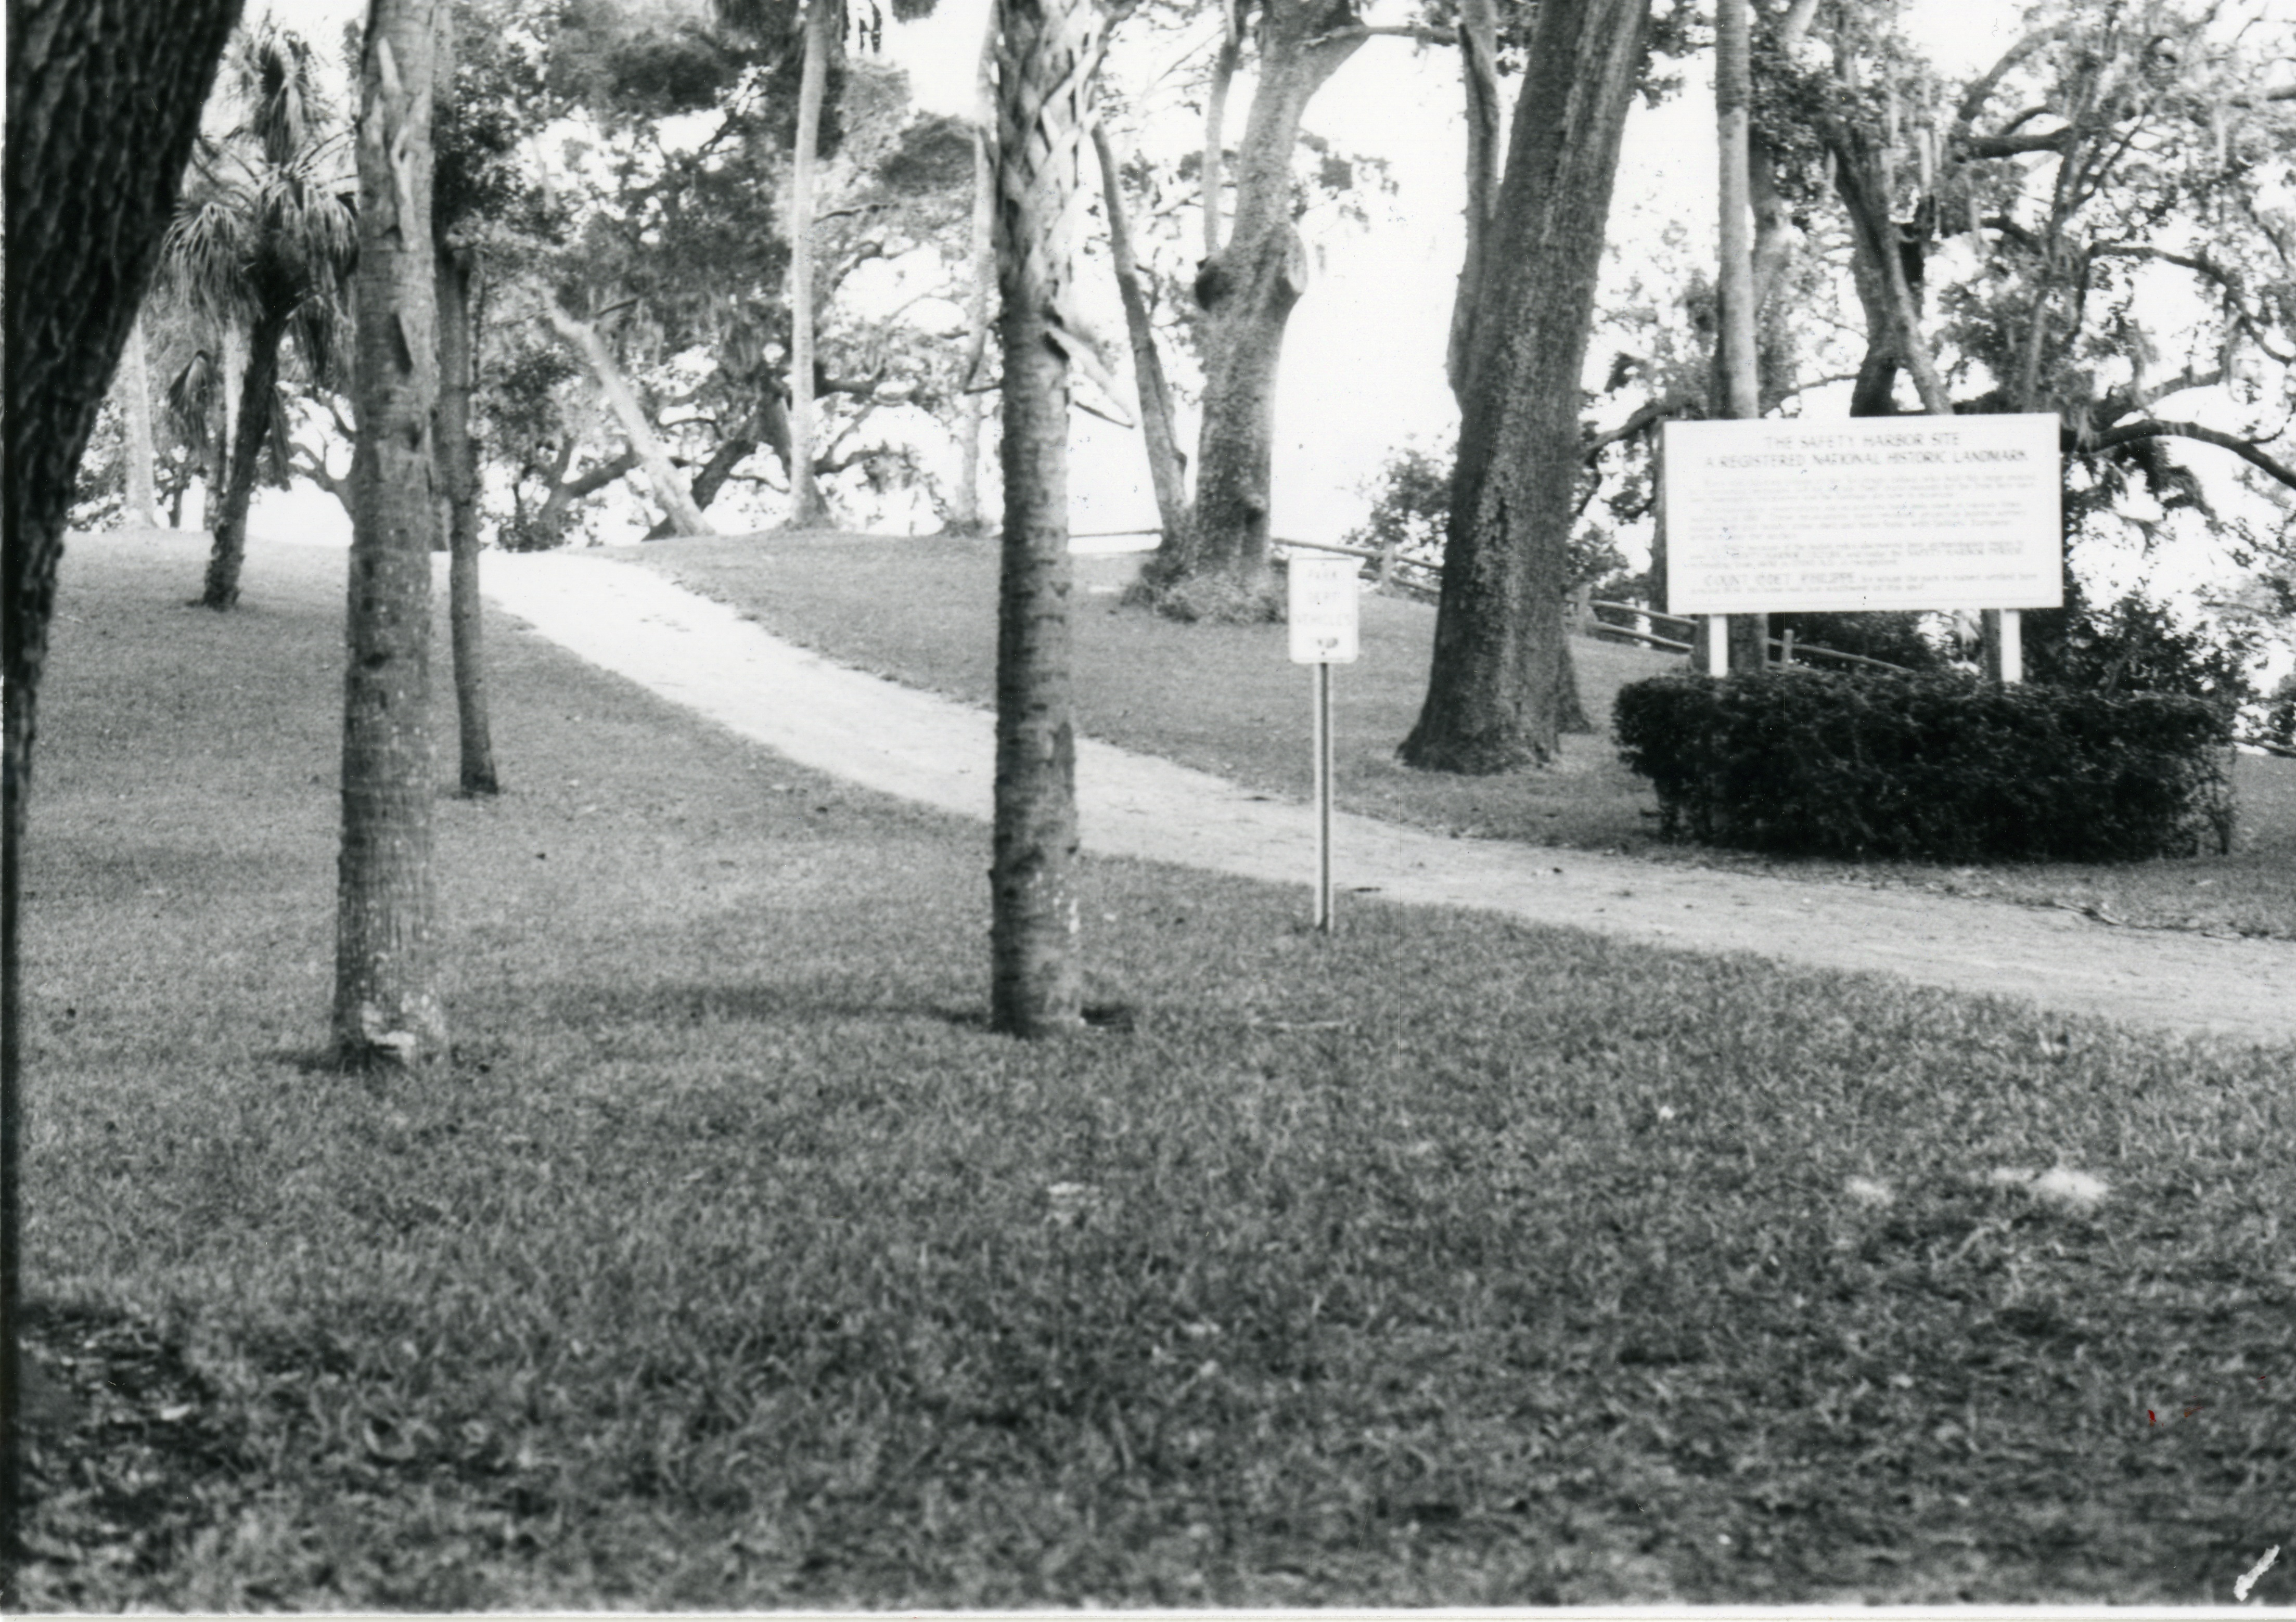 A trail at Philippe Park in Safety Harbor, Florida, undated. Wood for the Safety Harbor Church came from E.H. Coachman's sawmill, which was located on property that is now within Philippe Park.